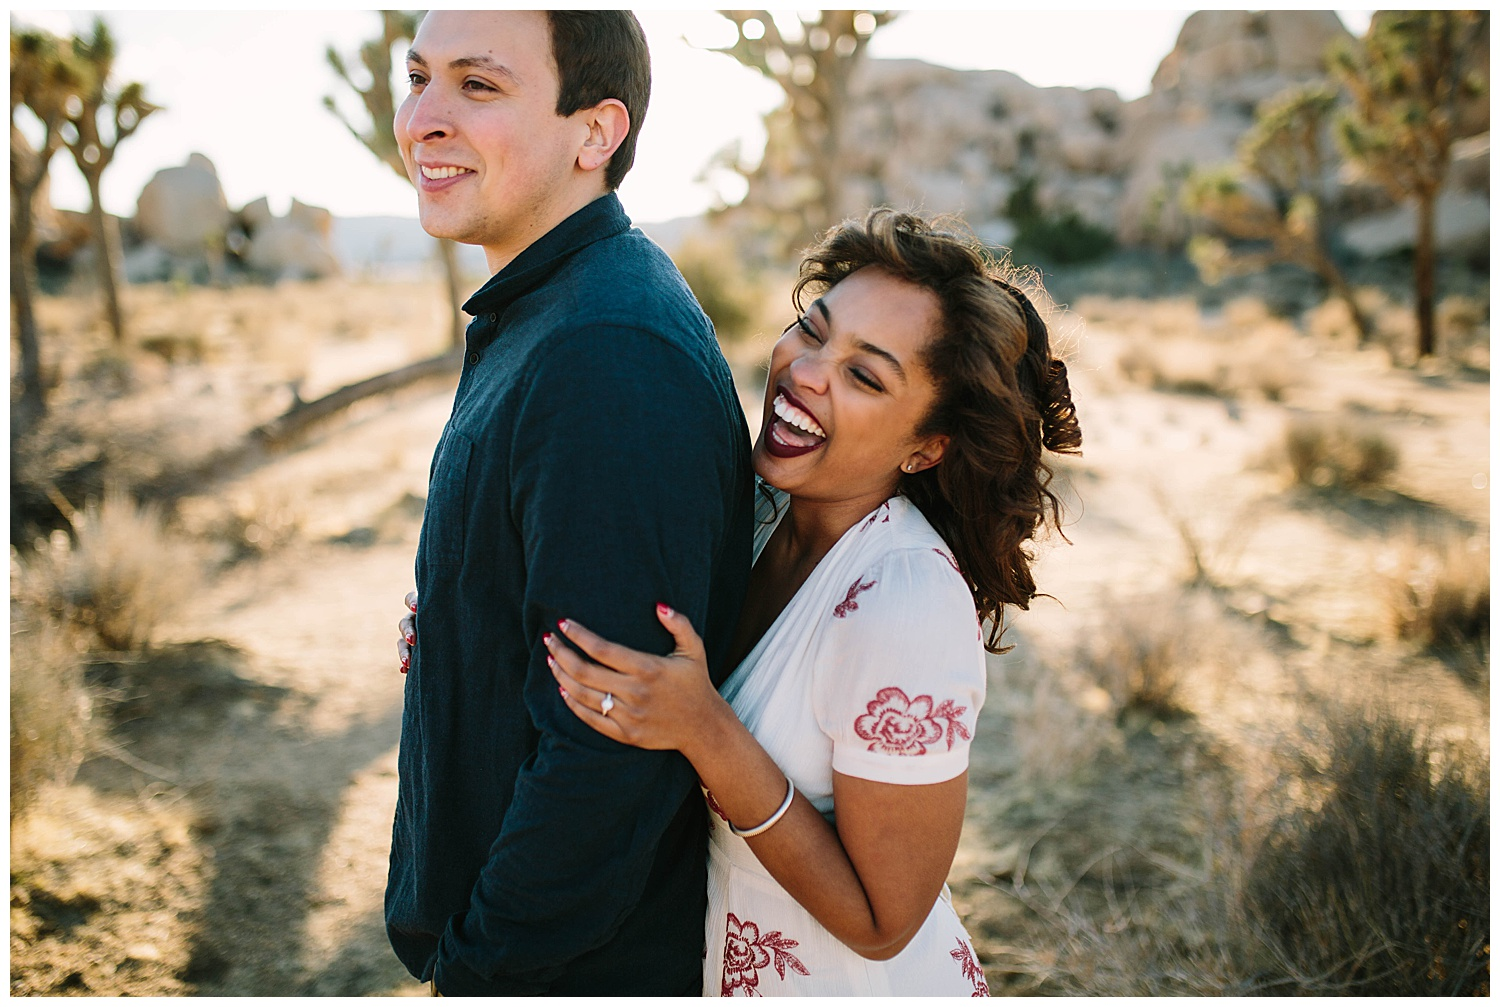 la.lifestyle.photography.session.engaged.malibu.joshuatree.kendralynnephotography-25.jpg